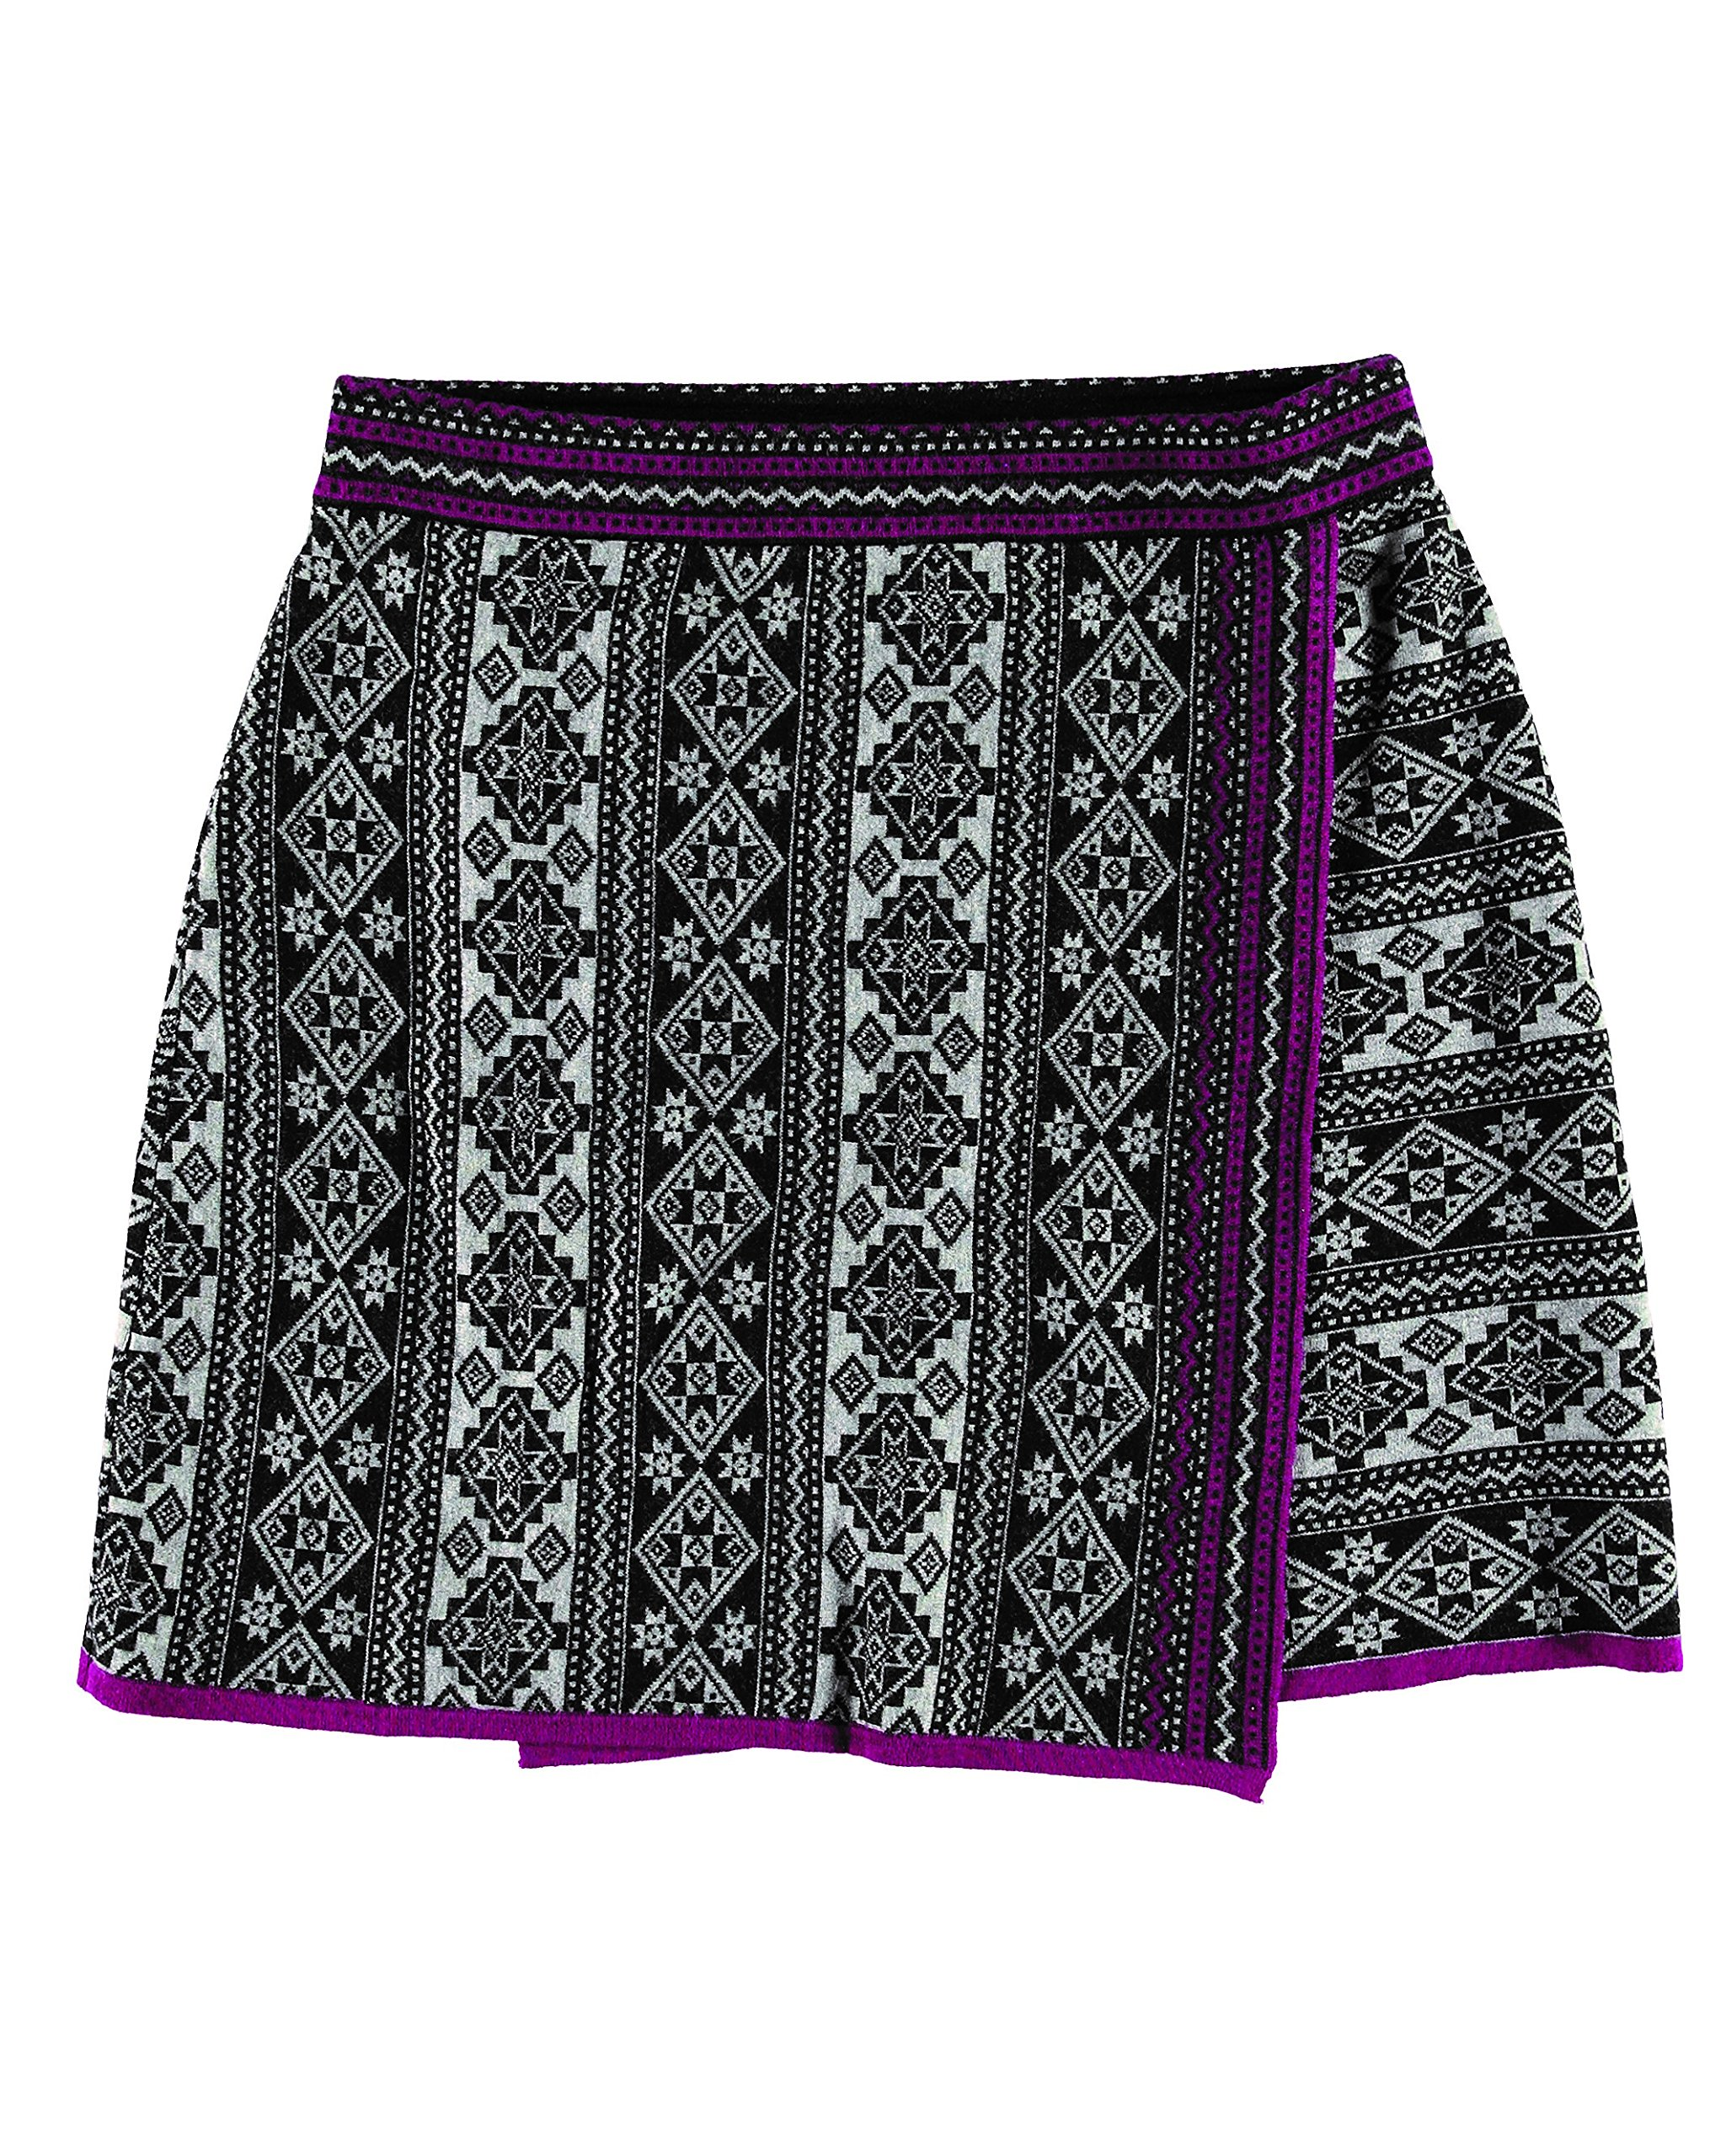 Krimson Klover Chantal Fair Isle Wrap Skirt - ( Loganberry, Small ) by Krimson Klover